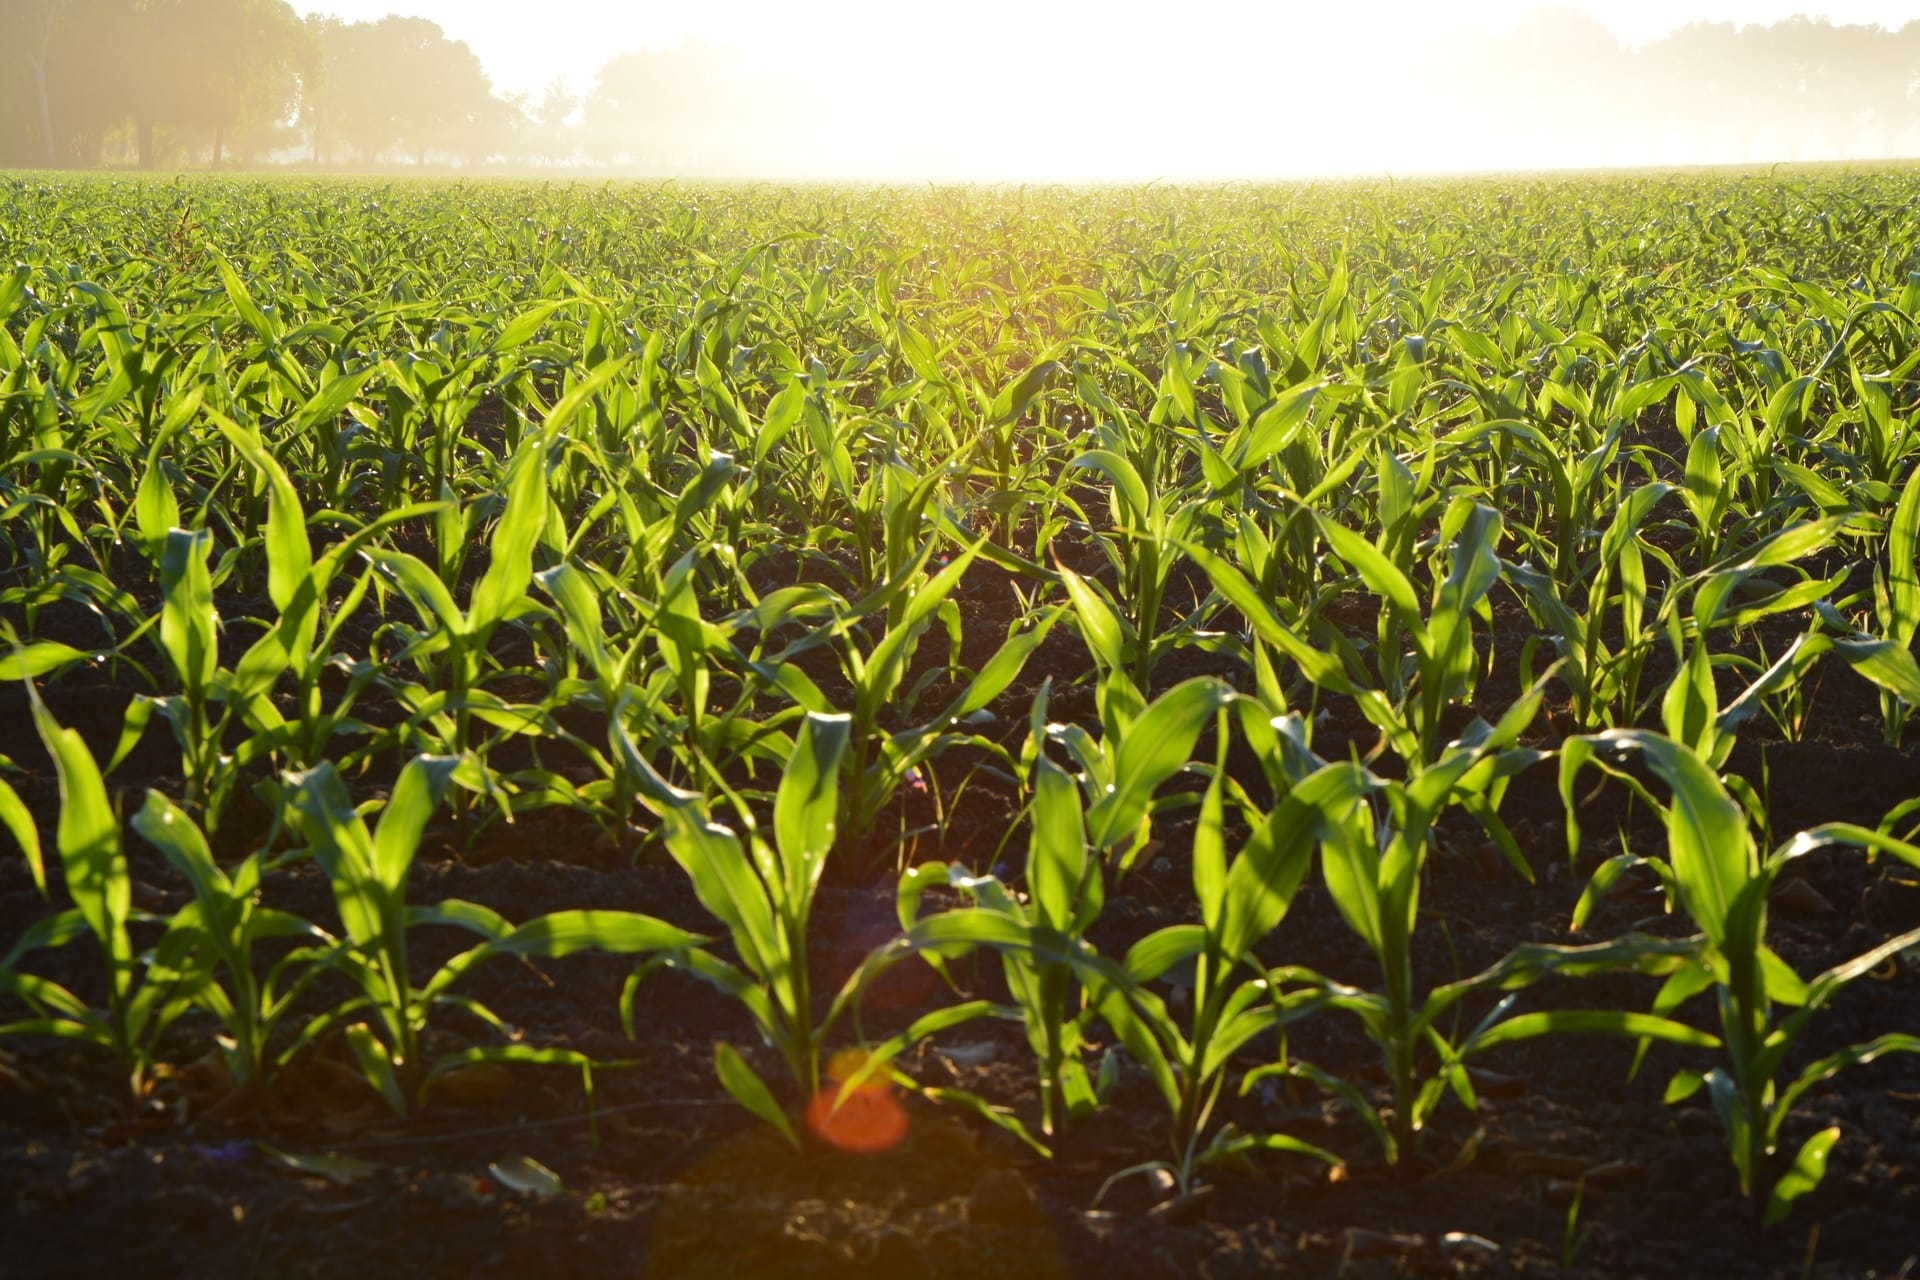 Agriculture corn cropland